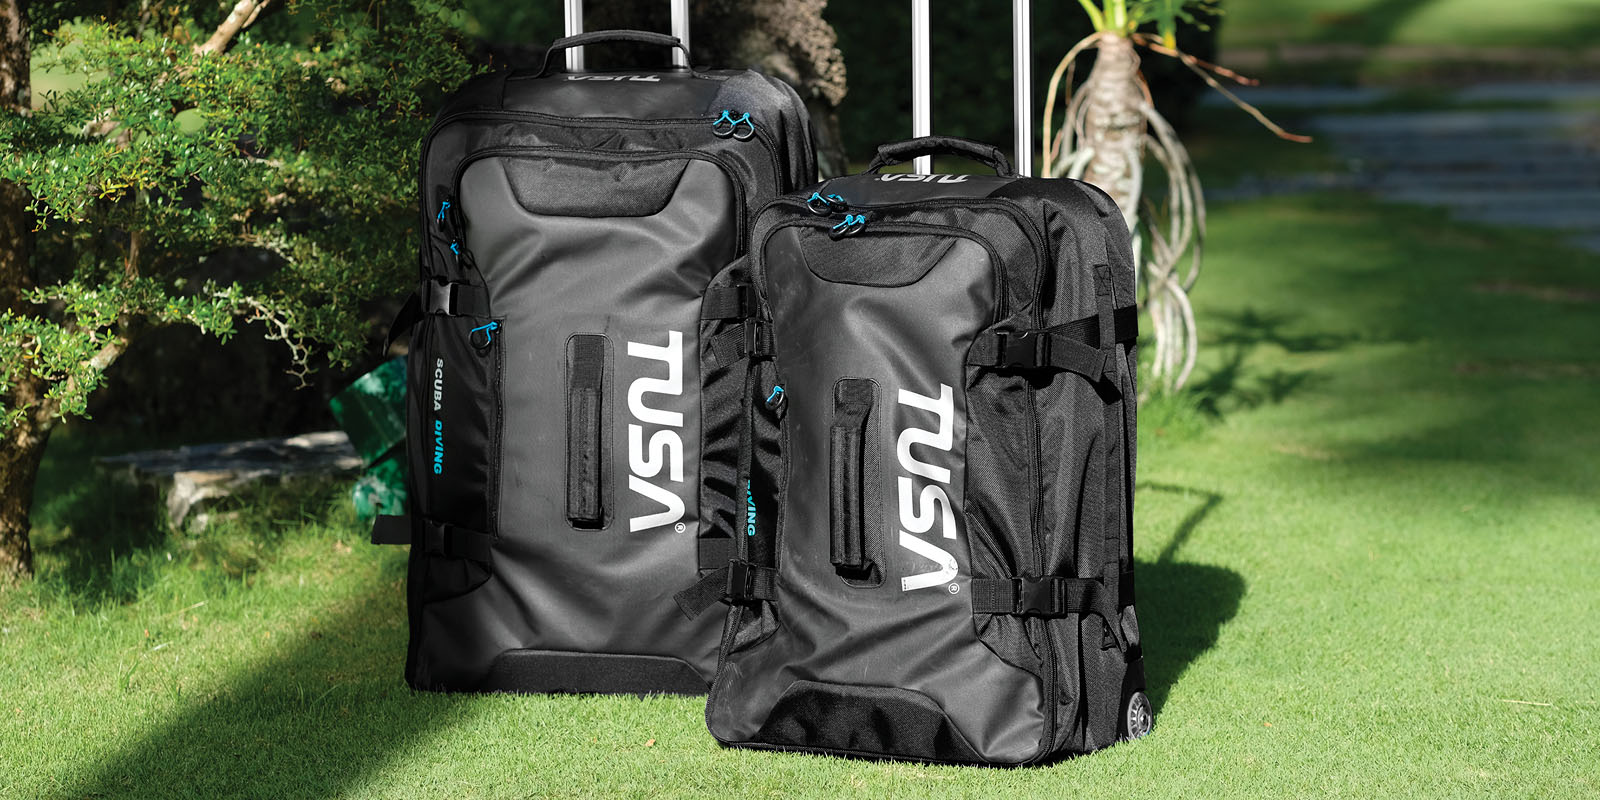 7595f1ac0d6c Announcing the release of New 2019 TUSA Product Catalog Learn more about  our latest product offerings.